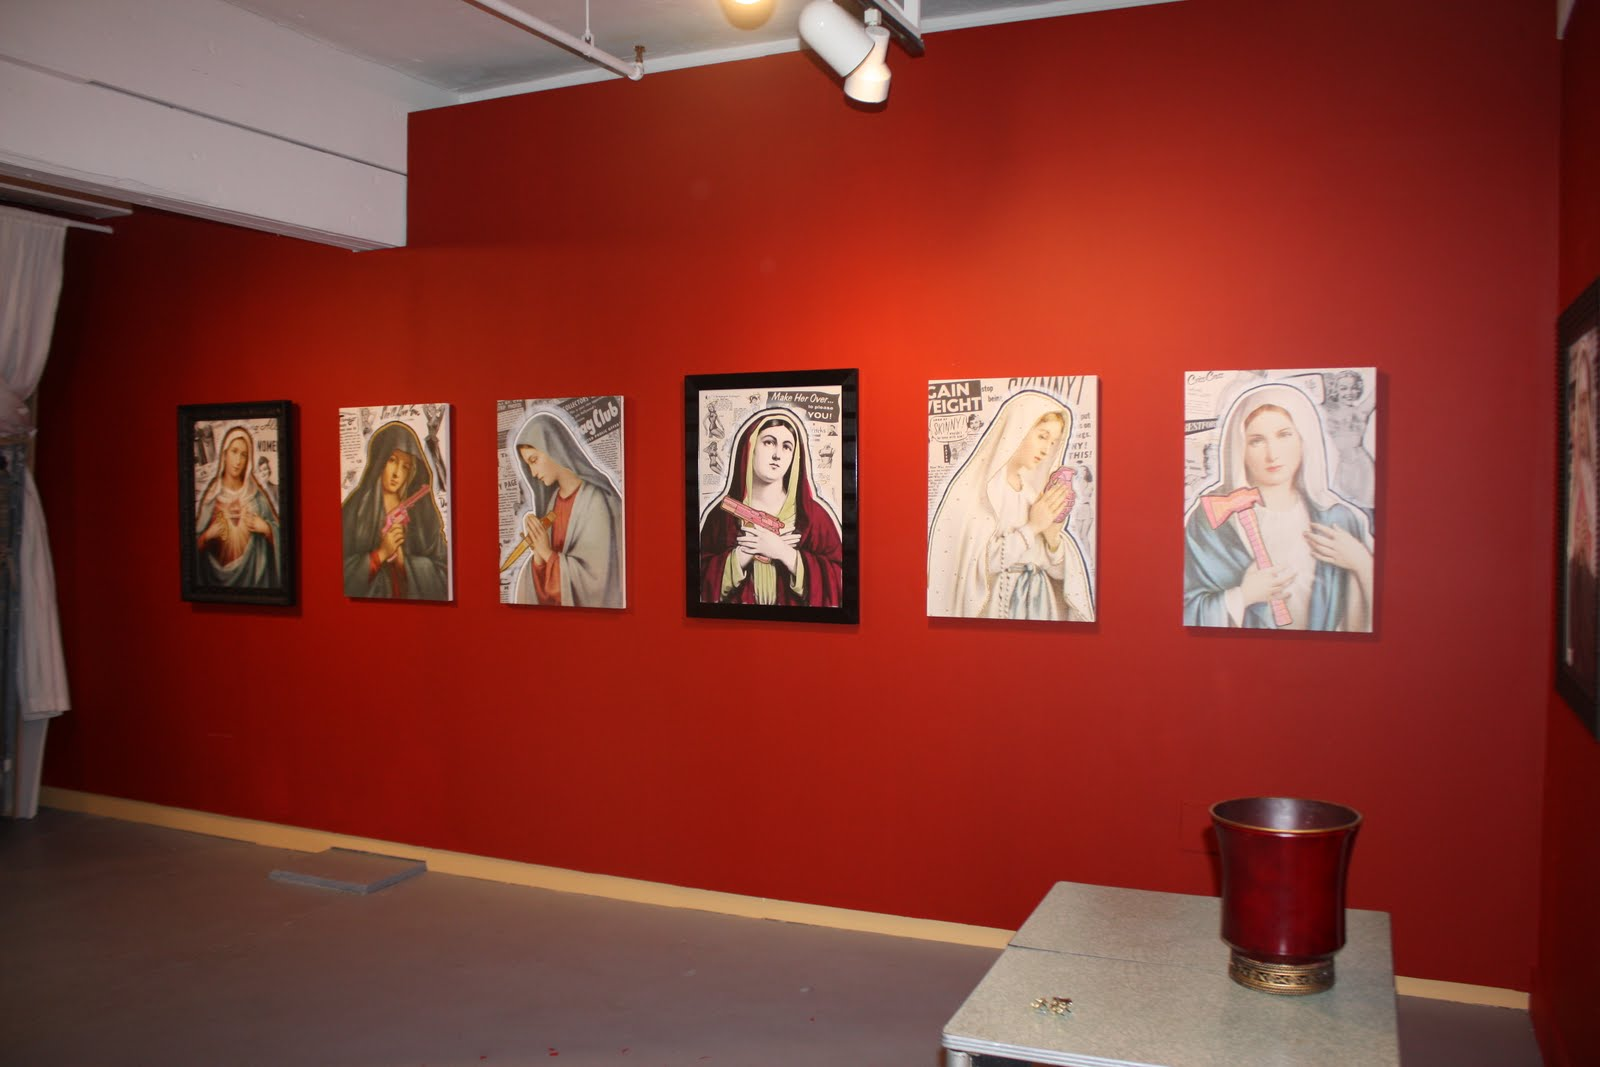 Cool The Virgins on the Red Wall at the Ghost Gallery in Seattle